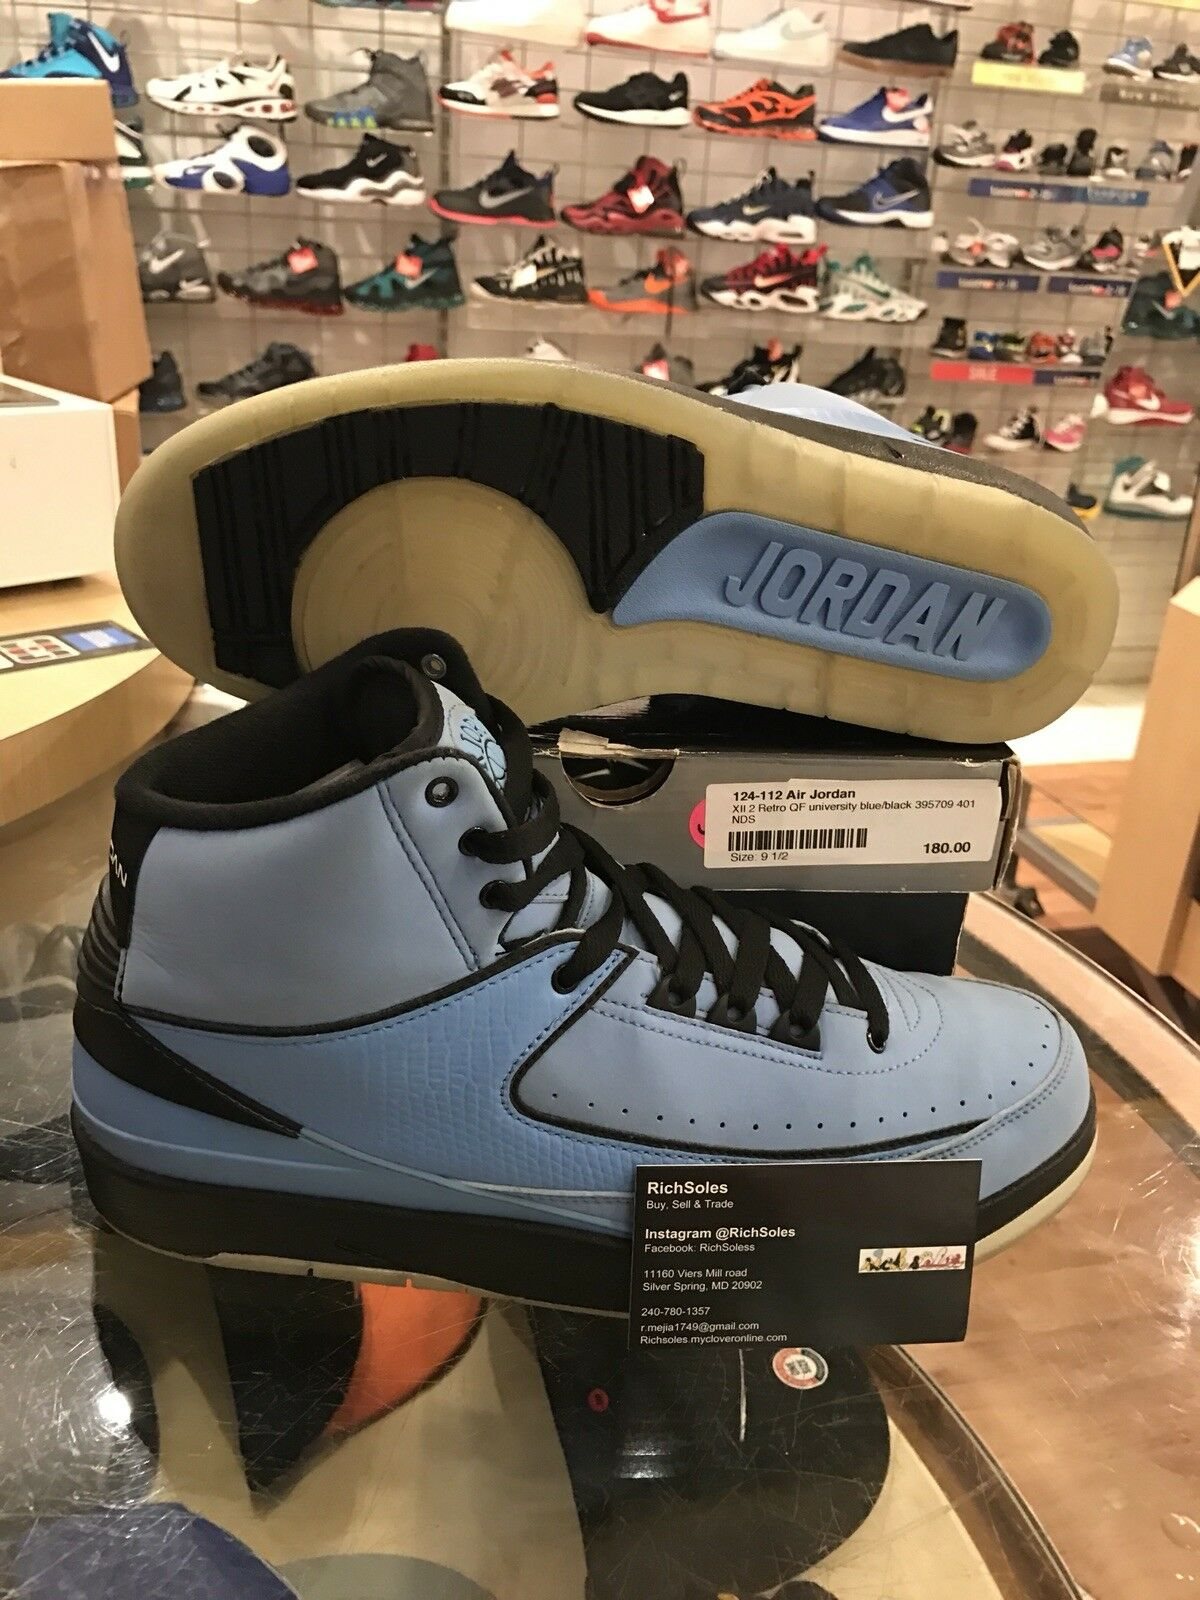 Nike Air Jordan II 2 Retro QF University Blue/Black-White '10 395709-401 SZ 9.5